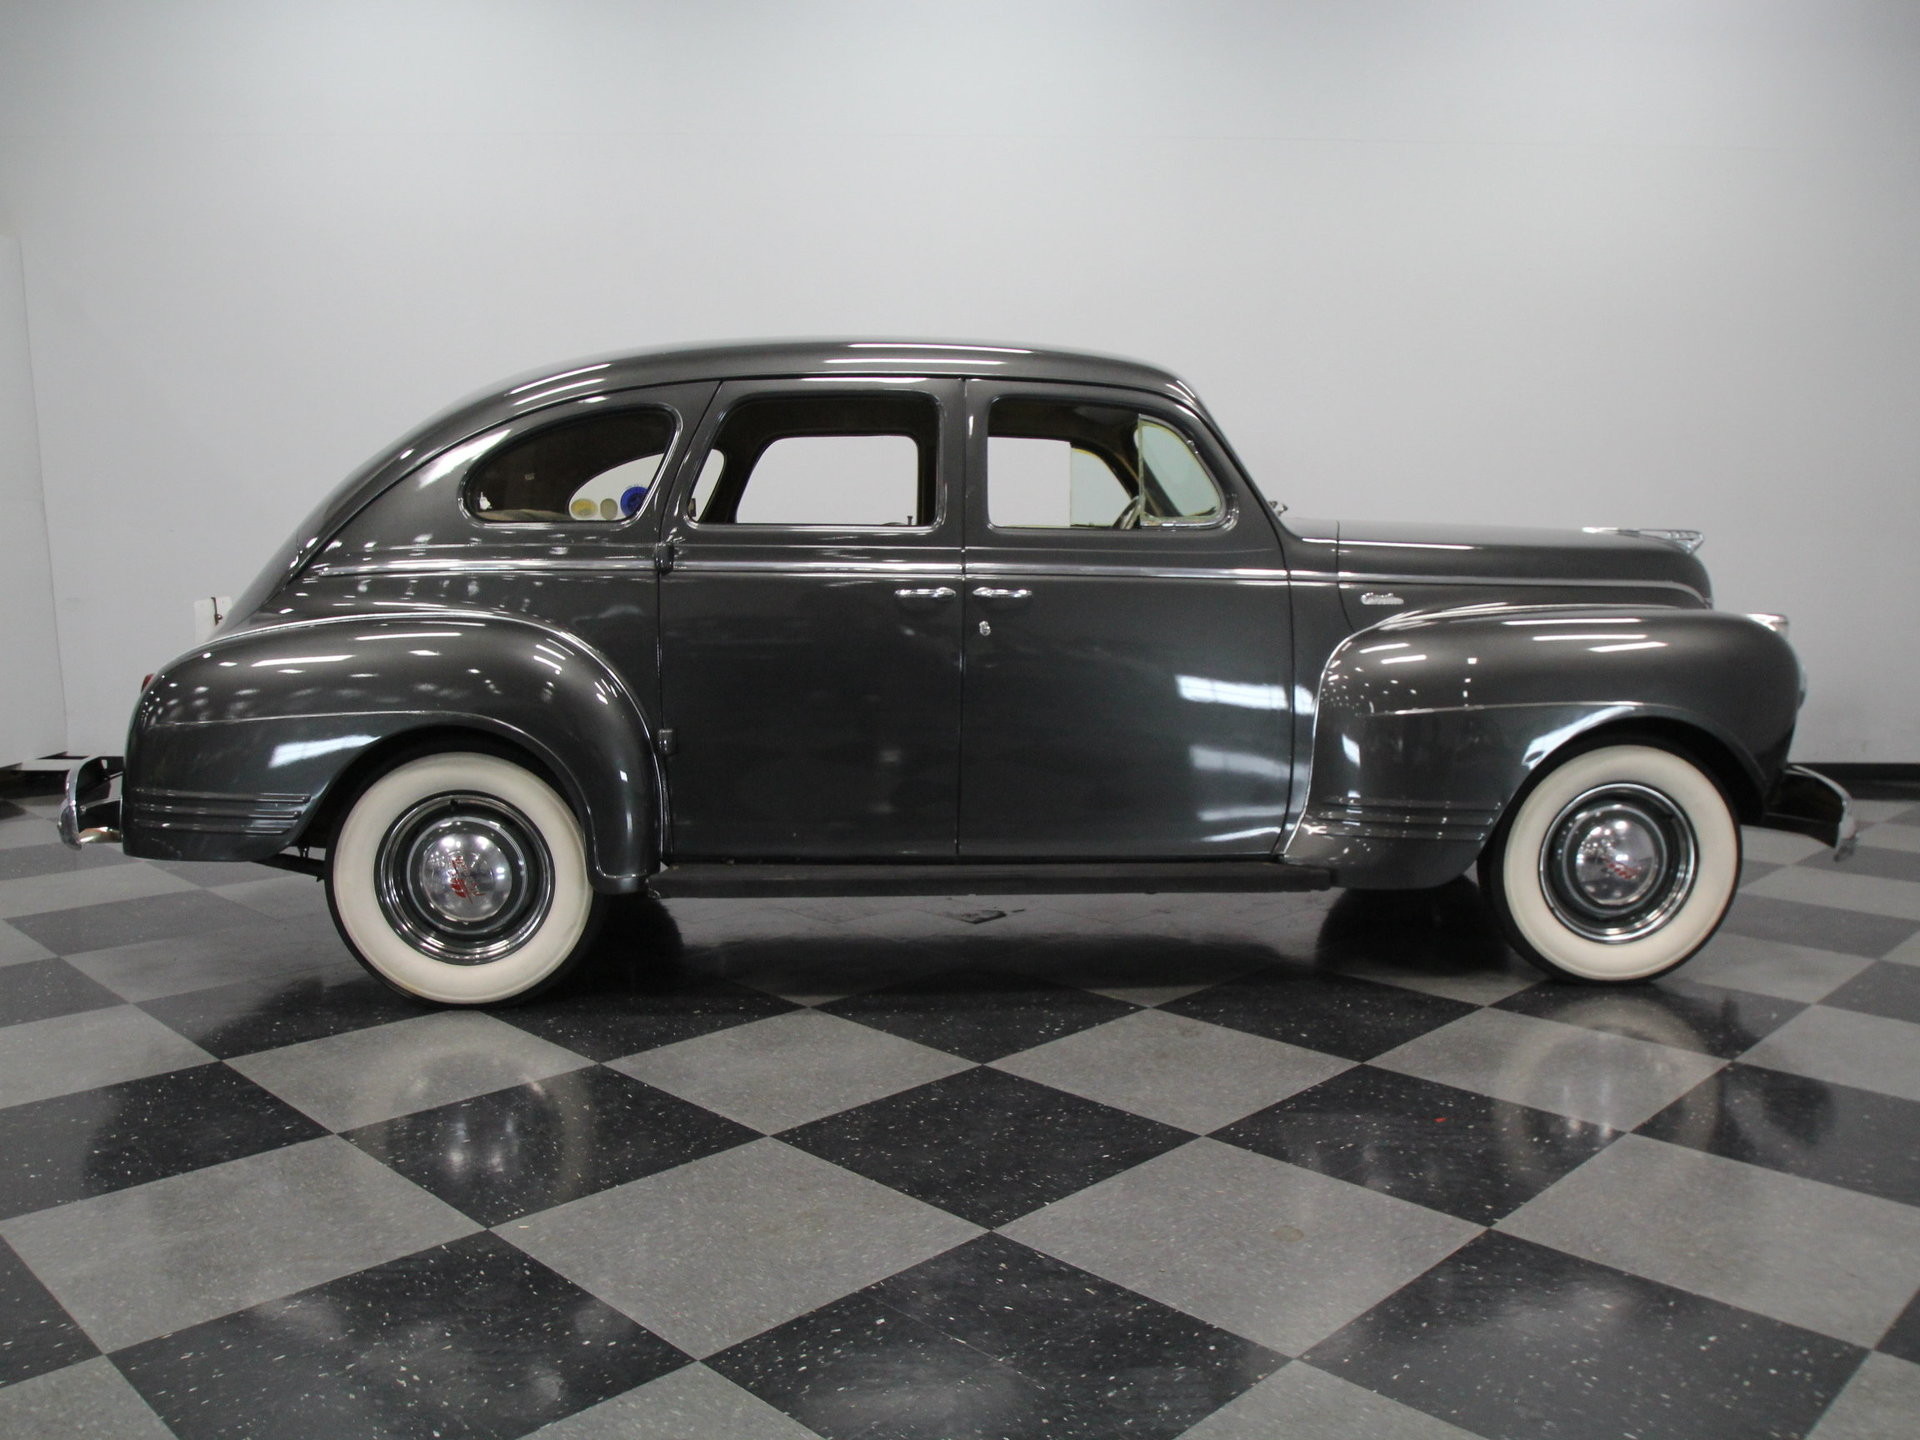 1941 Plymouth Deluxe Streetside Classics The Nations Trusted 2 Door View 360